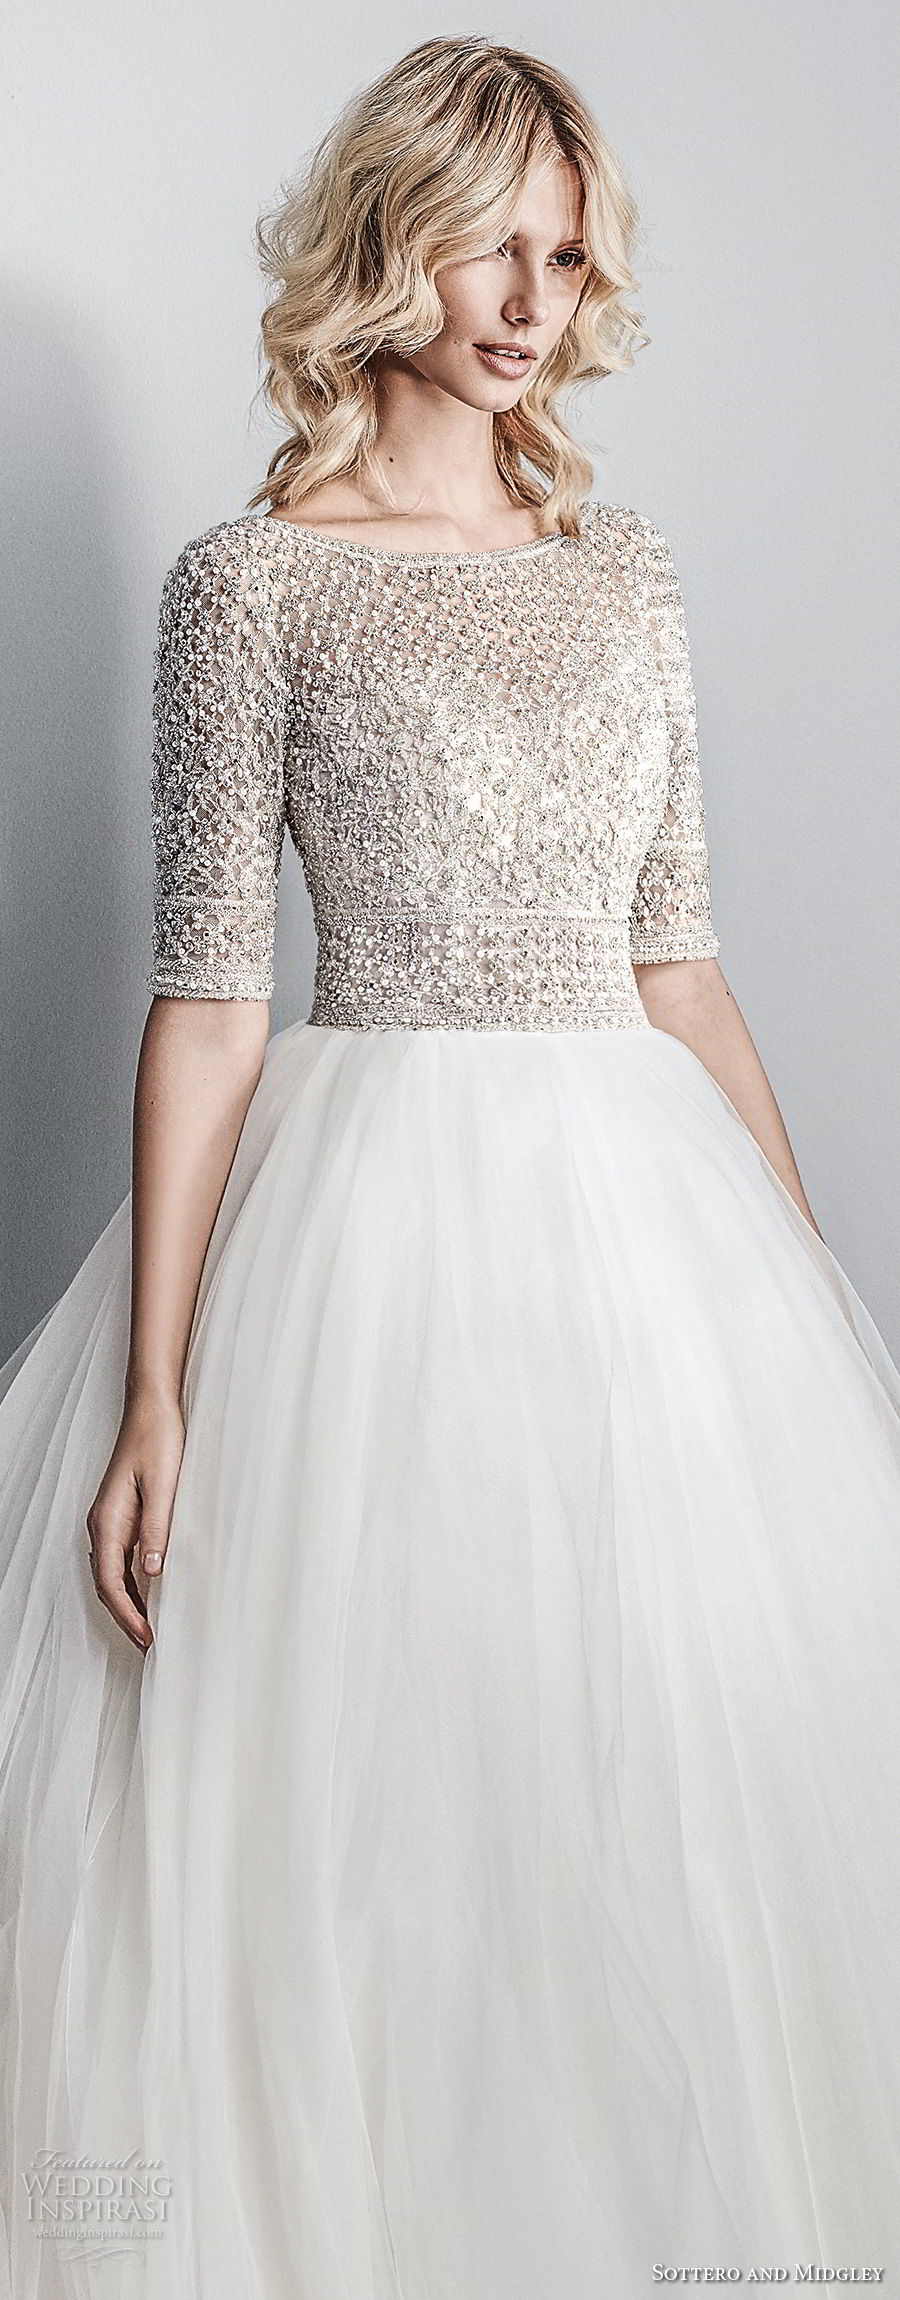 sottero midgley fall 2017 half sleeves bateau neck heavily embellished beaded bodice tulle skirt romantic glamorous a line wedding dress open square back chapel train (611) zv